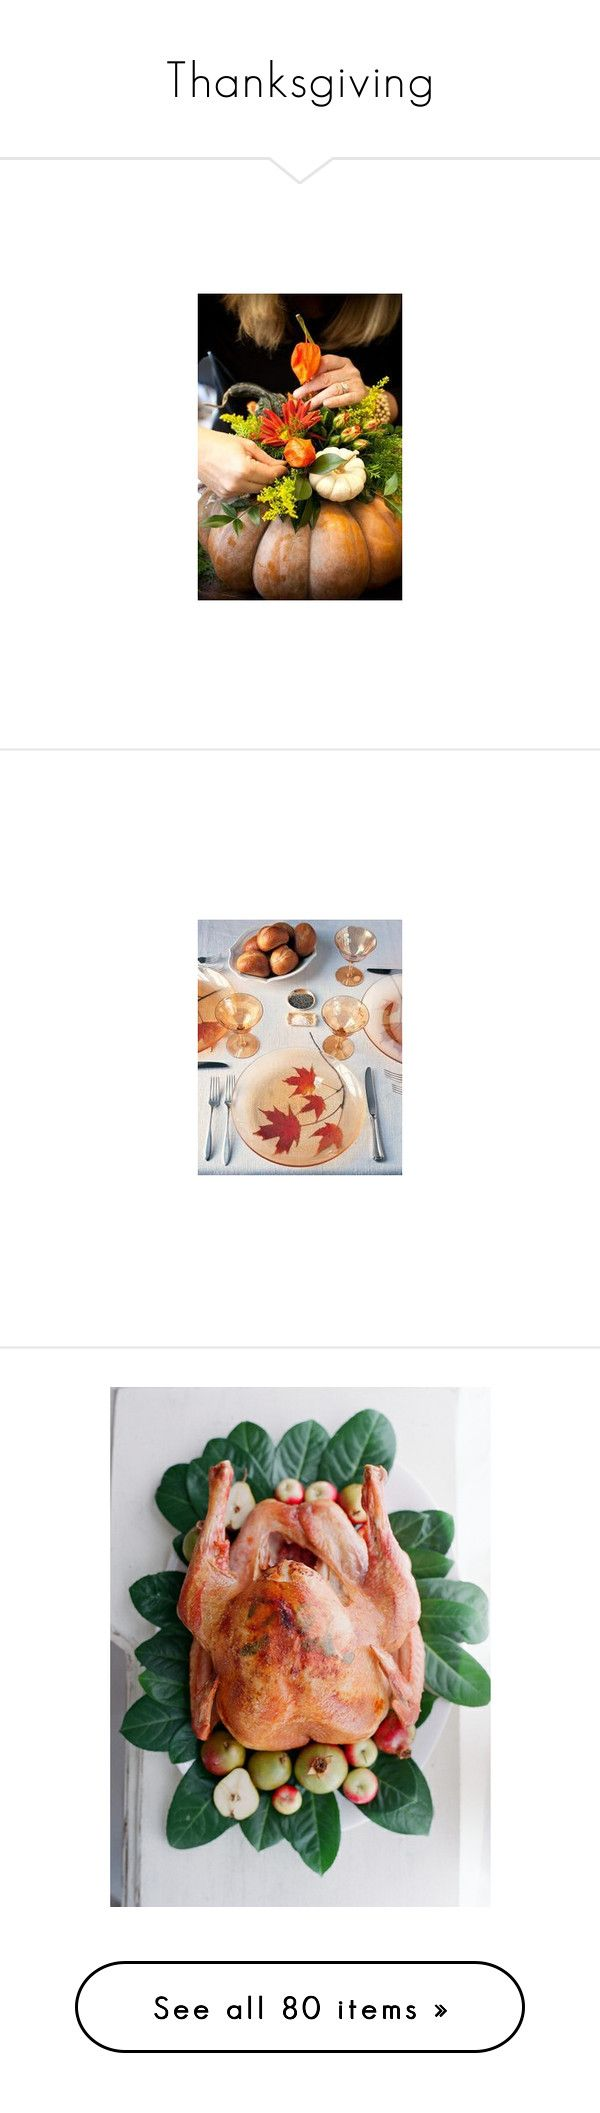 """""""Thanksgiving"""" by bevain-330 ❤ liked on Polyvore featuring home, kitchen & dining, small appliances, ice cream mixer, door rack, track rack, fruit rack, pie rack, food and thanksgiving"""